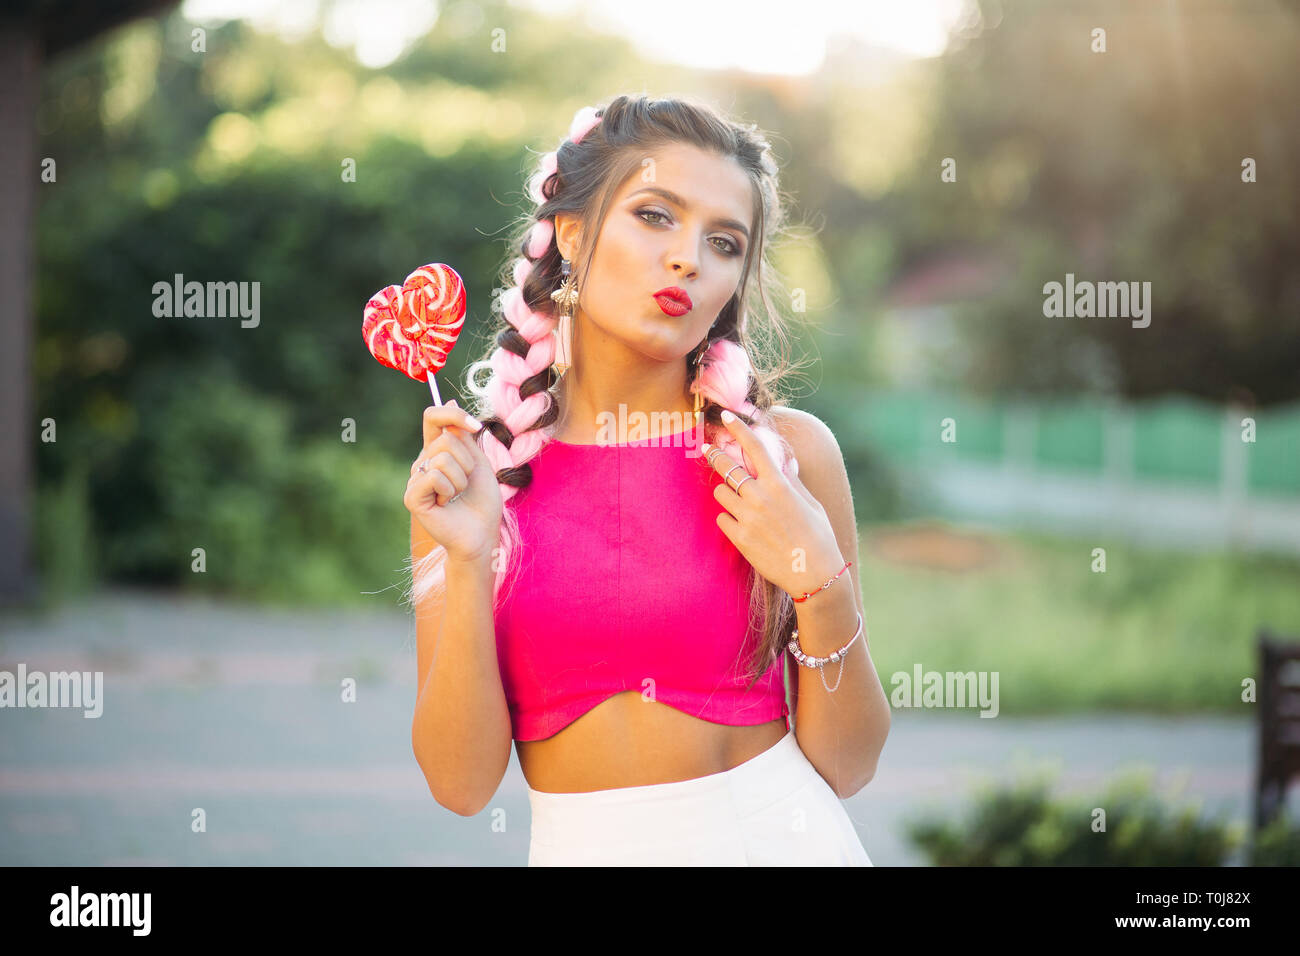 Pretty and positive girl in pink top holding candy heart on stick. Stock Photo